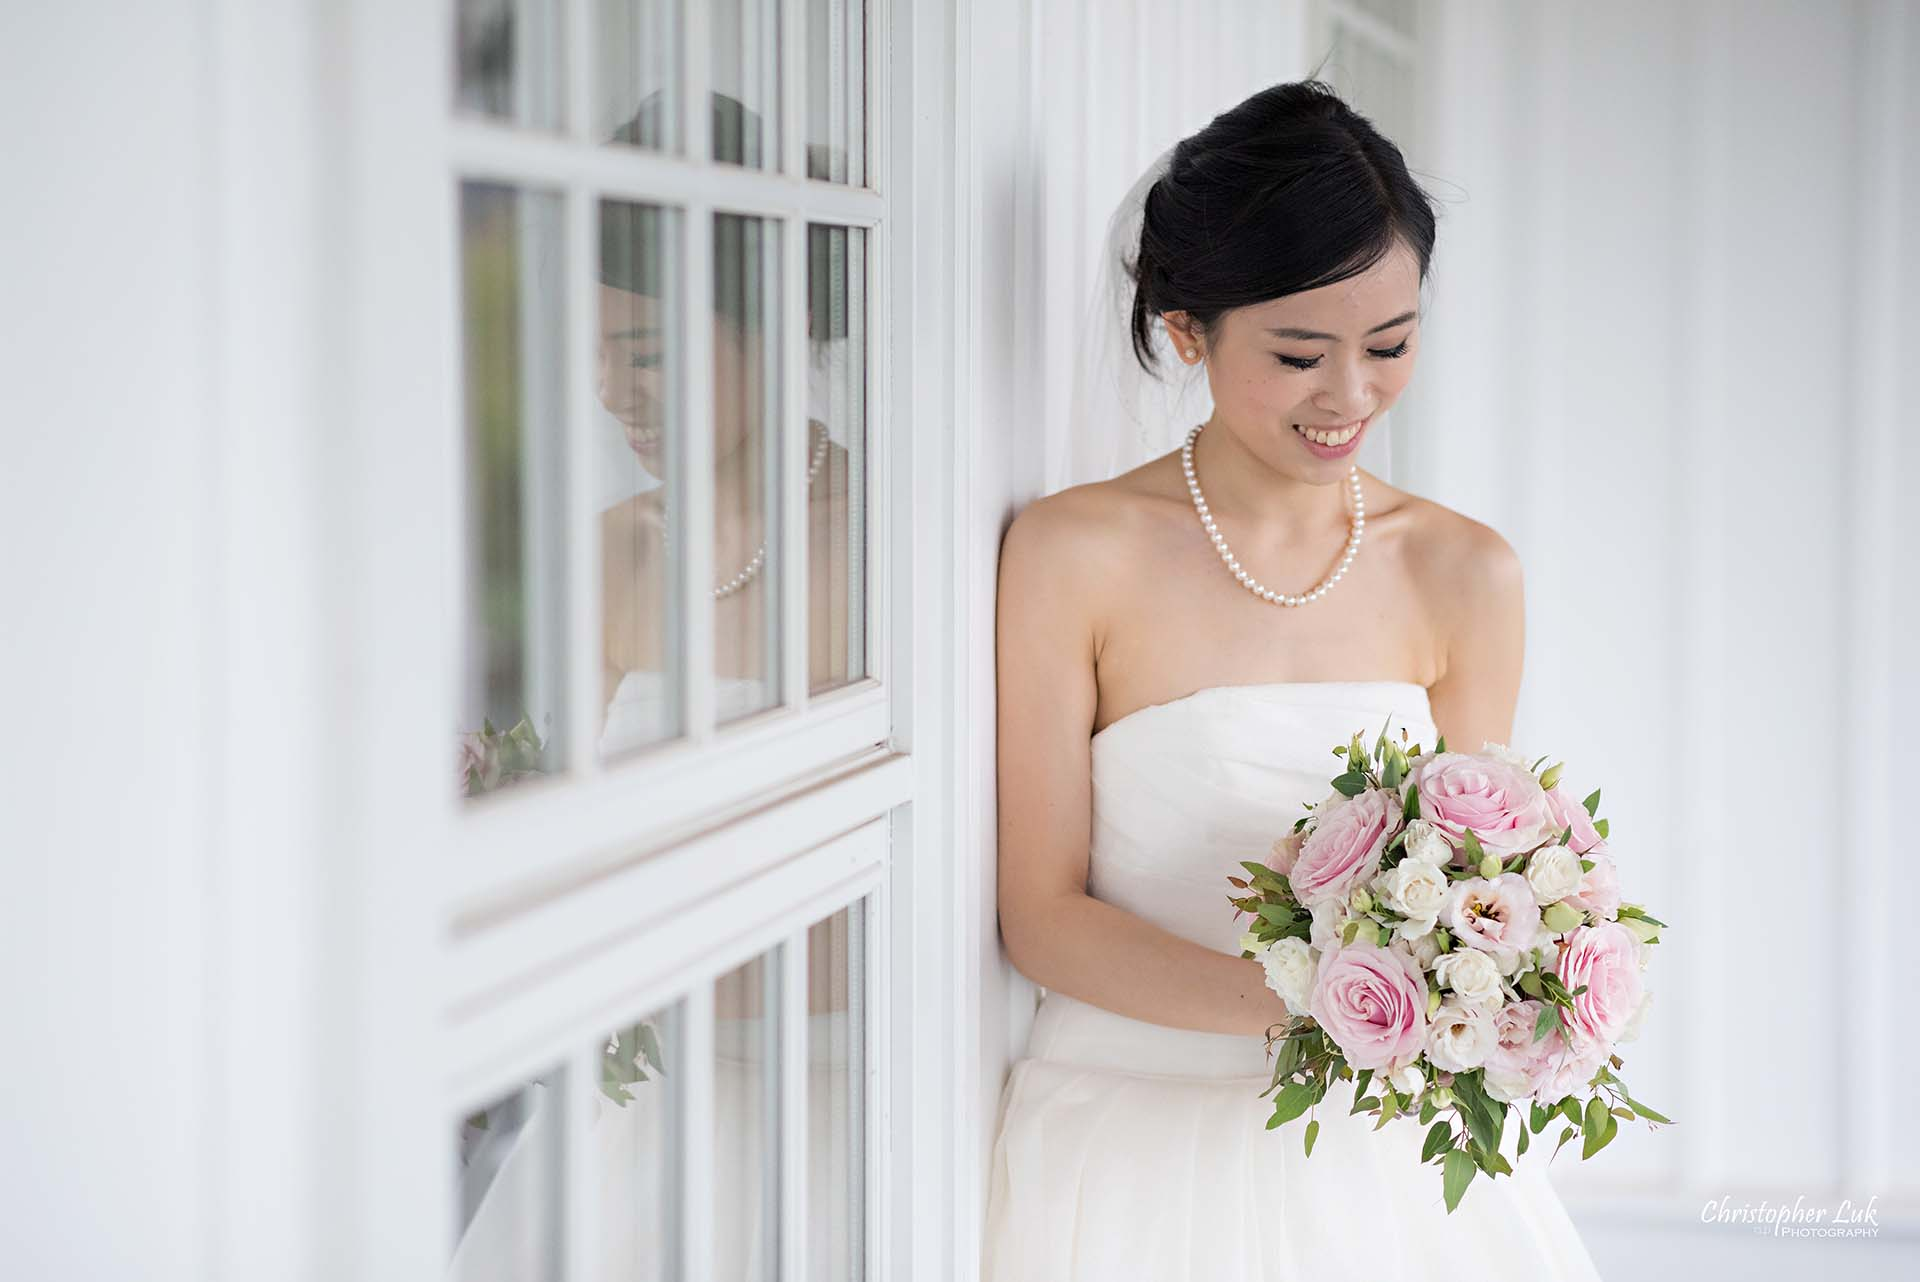 Christopher Luk Toronto Wedding Photographer Angus Glen Golf Club Markham Victoria Room Kennedy Loft Main Historic Estate Building Entrance Together Natural Candid Photojournalistic Bride White Wall Window Reflection Floral Bouquet Flowers